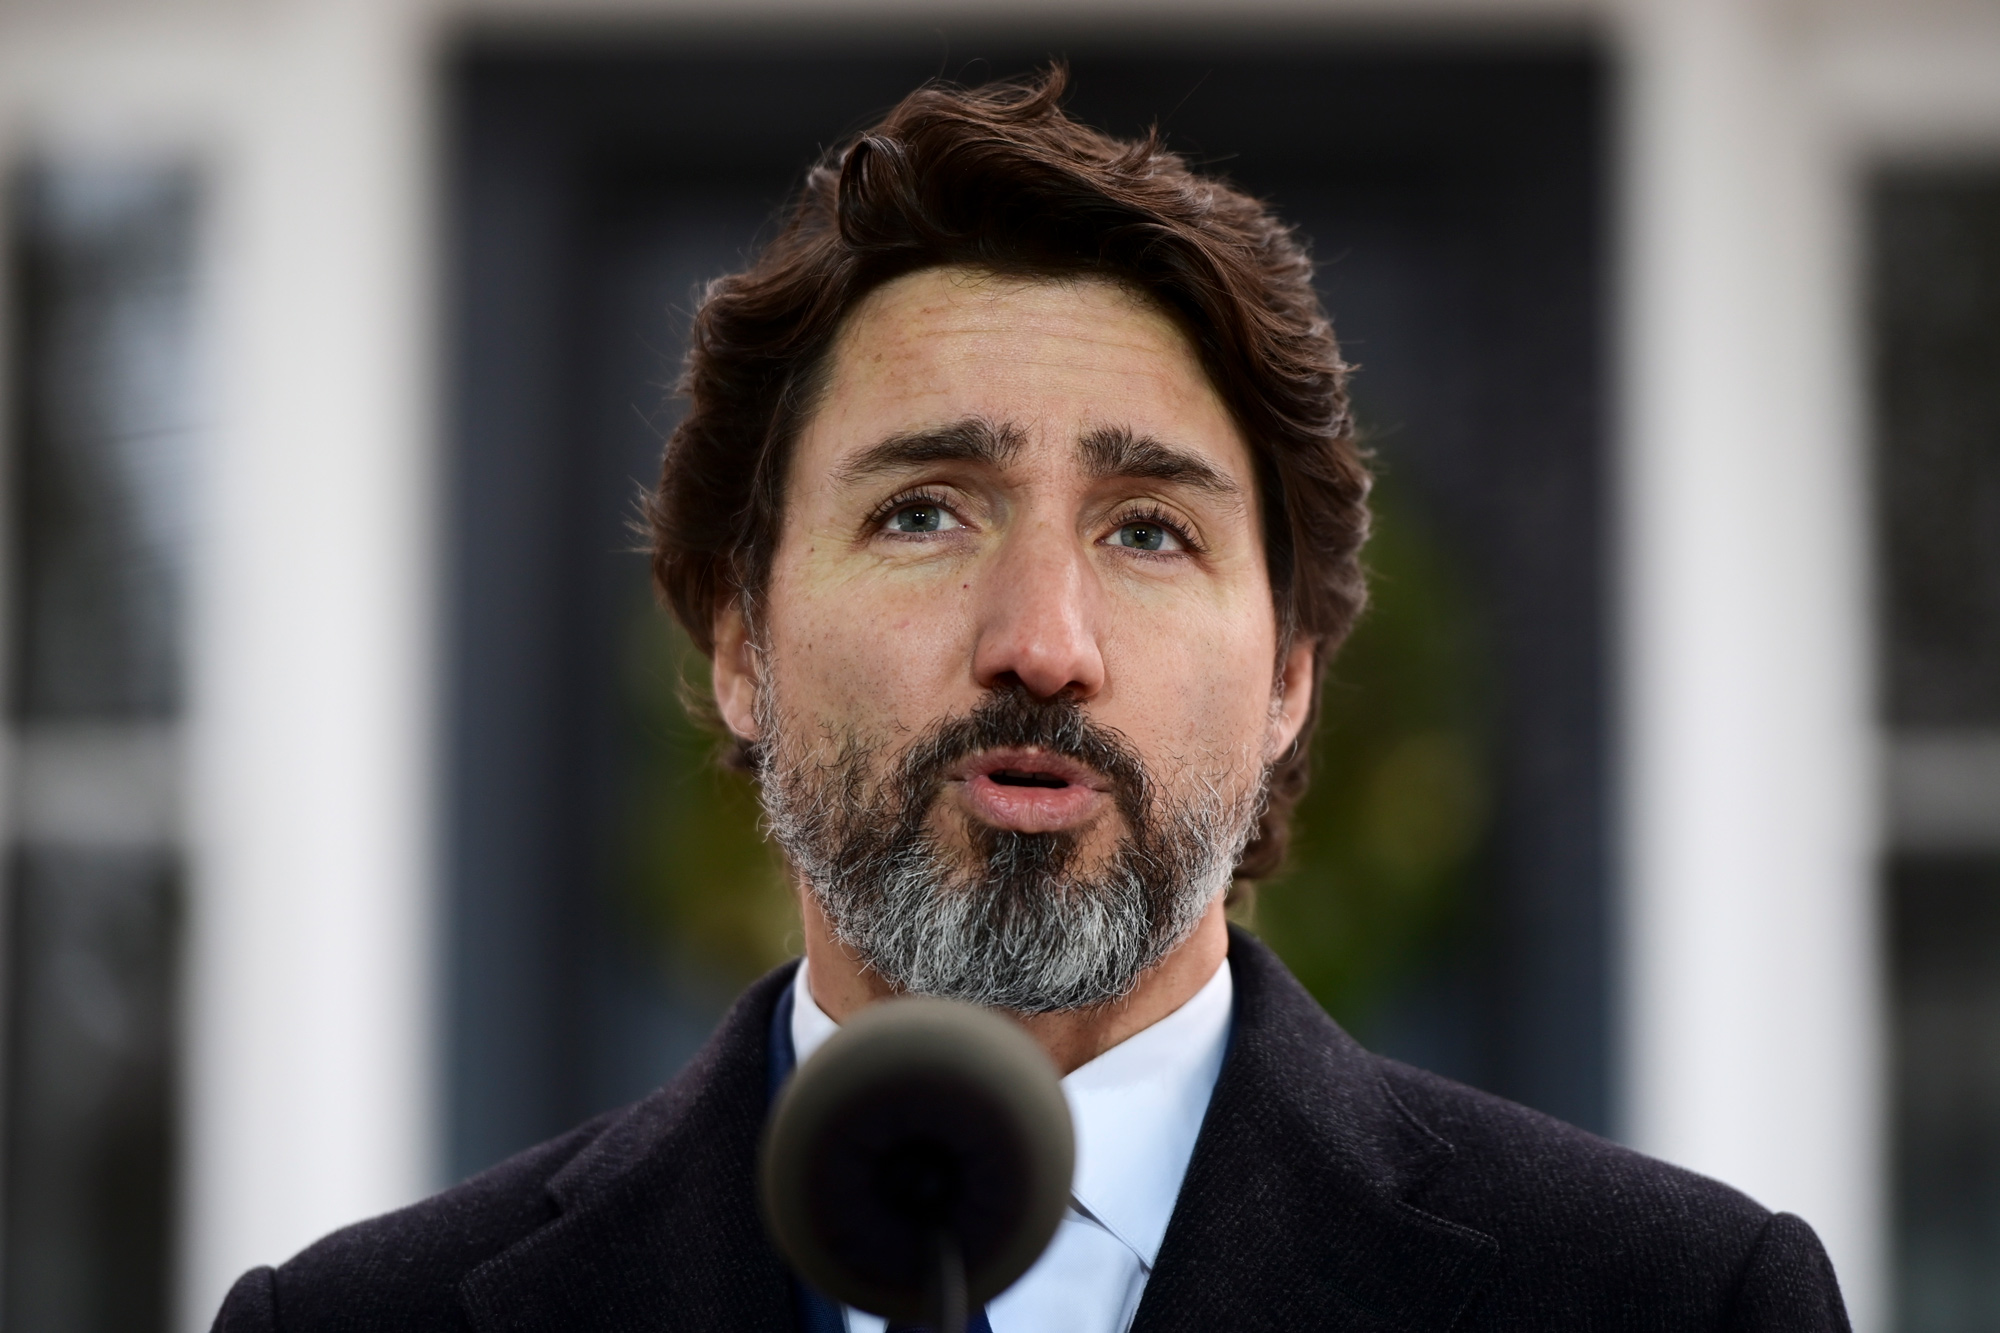 Prime Minister Justin Trudeau holds a press conference at Rideau Cottage in Ottawa on December 1.